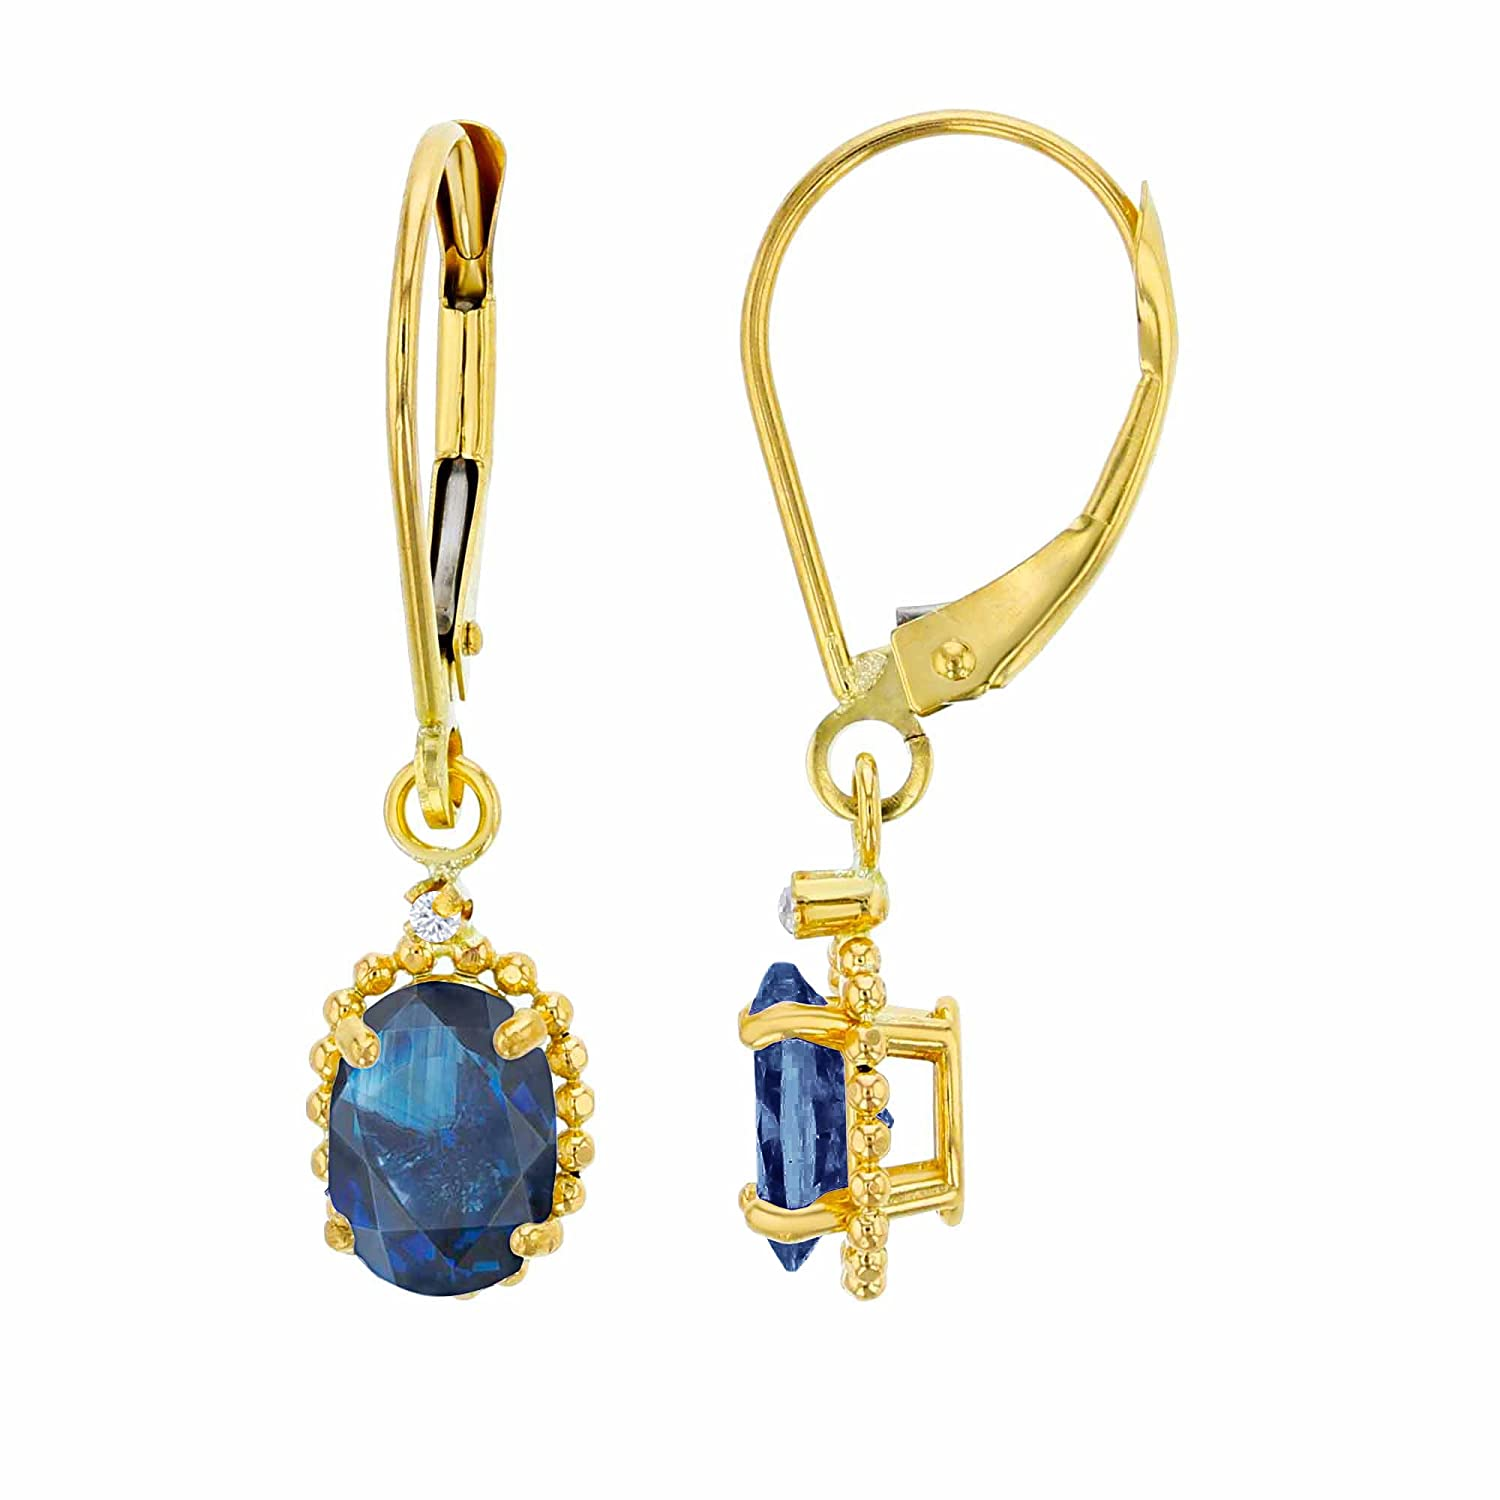 10K Yellow Gold 1.25mm Round White Topaz /& 6x4mm Oval Sapphire Bead Frame Drop Leverback Earring